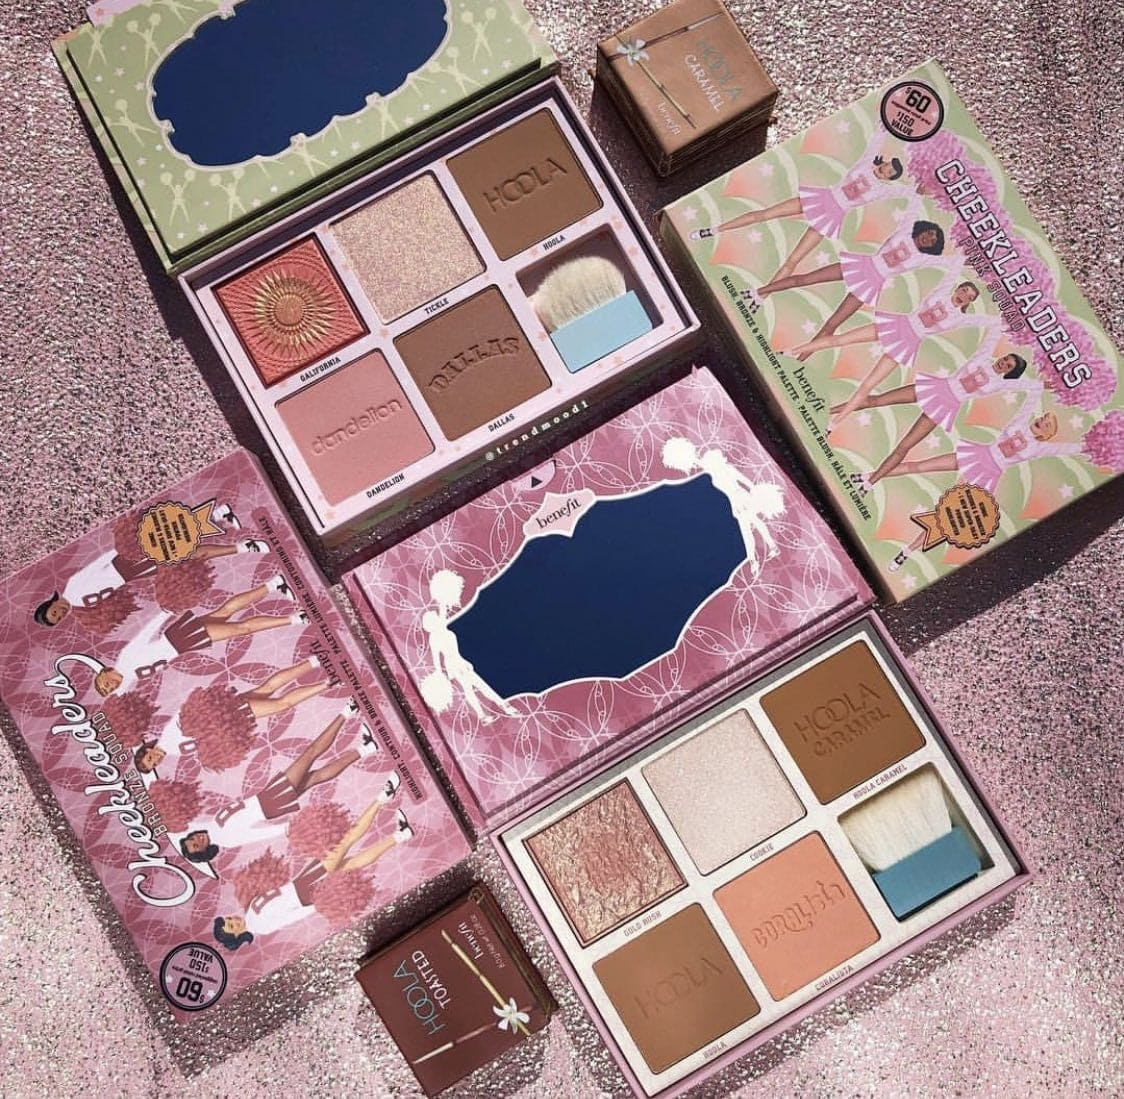 Benefit Cheekleaders Blusher, Highlighter and Bronzer Palettes